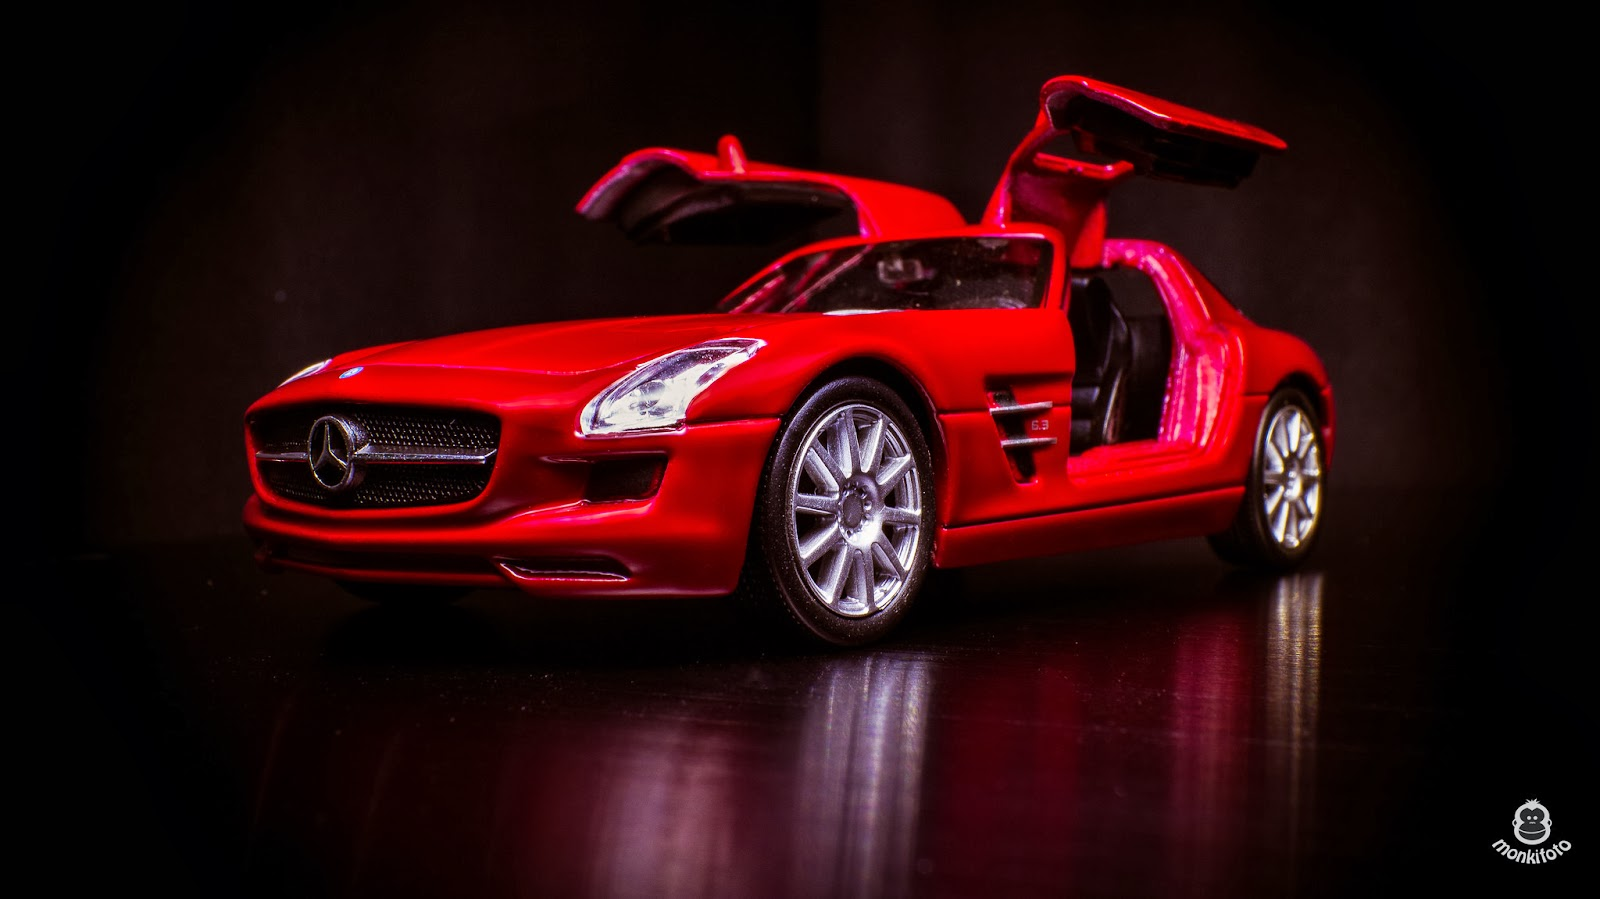 Merceded SLS AMG and More